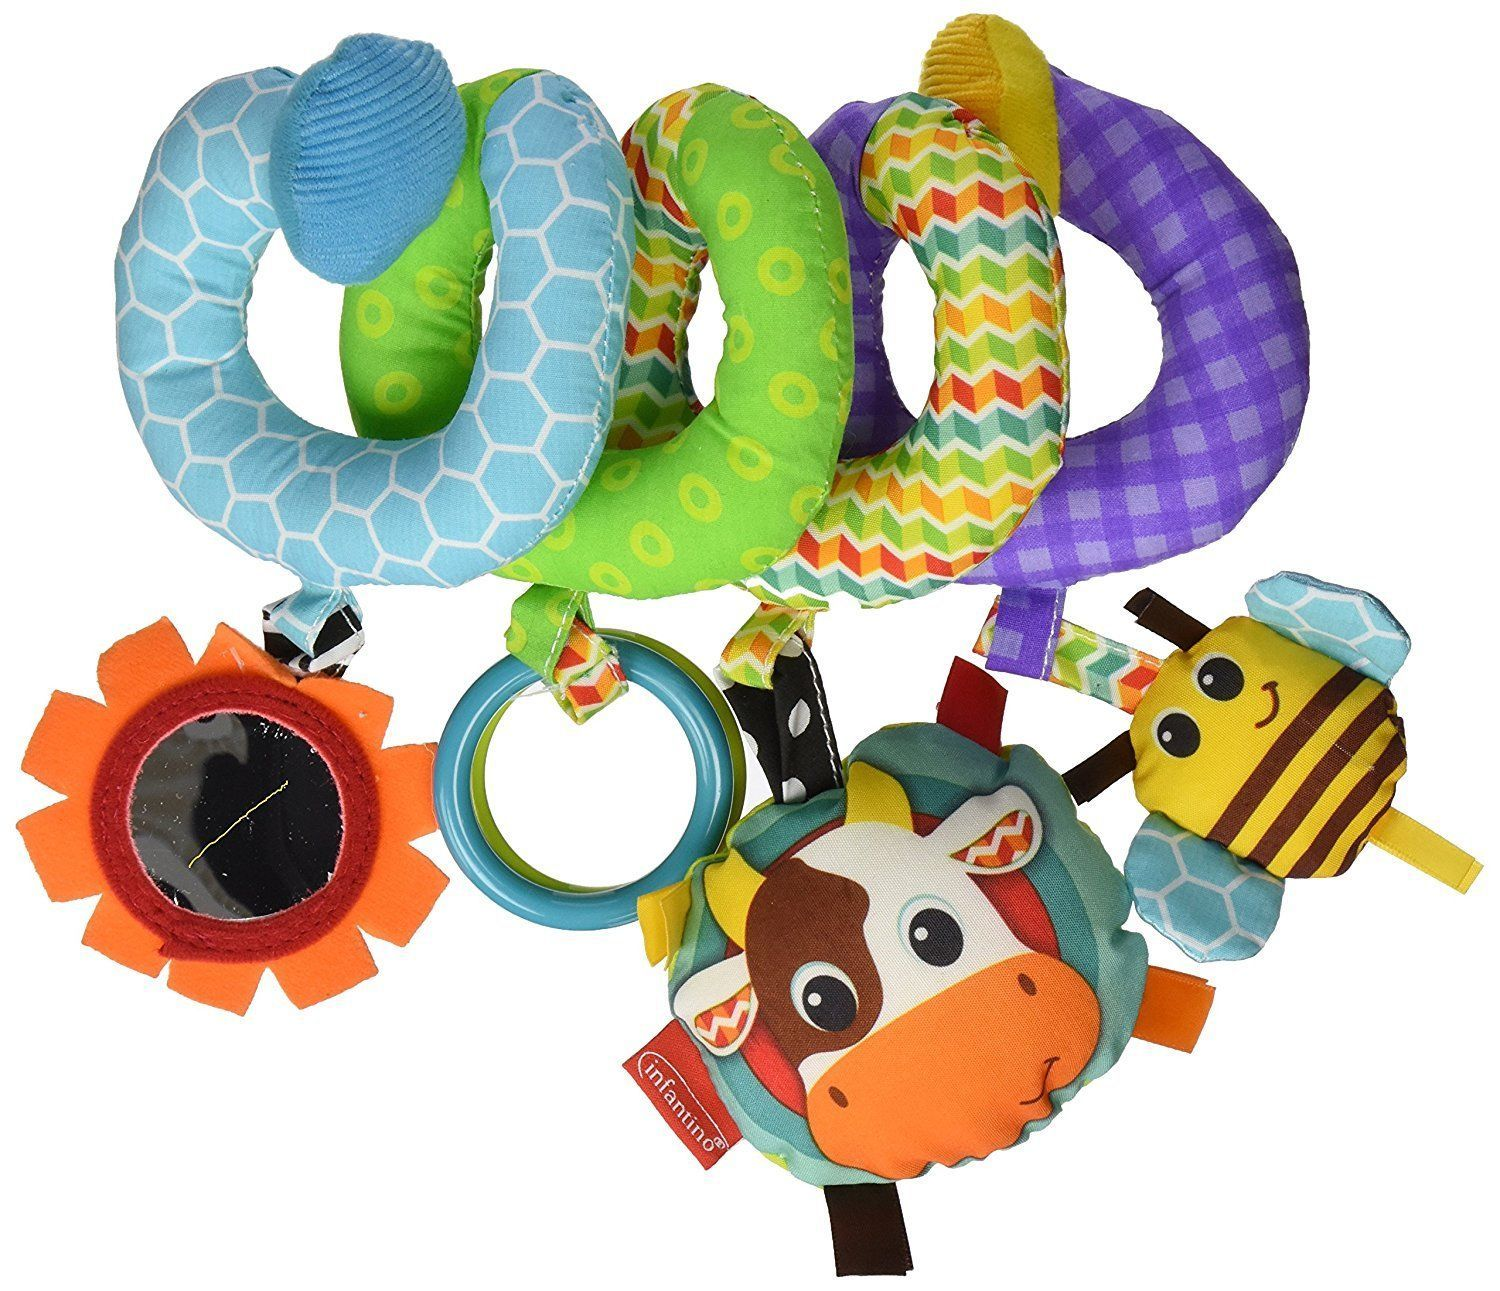 Car hanging toys  Baby Infant Toy Spiral Activity for Stroller Car Seat or Crib NEW